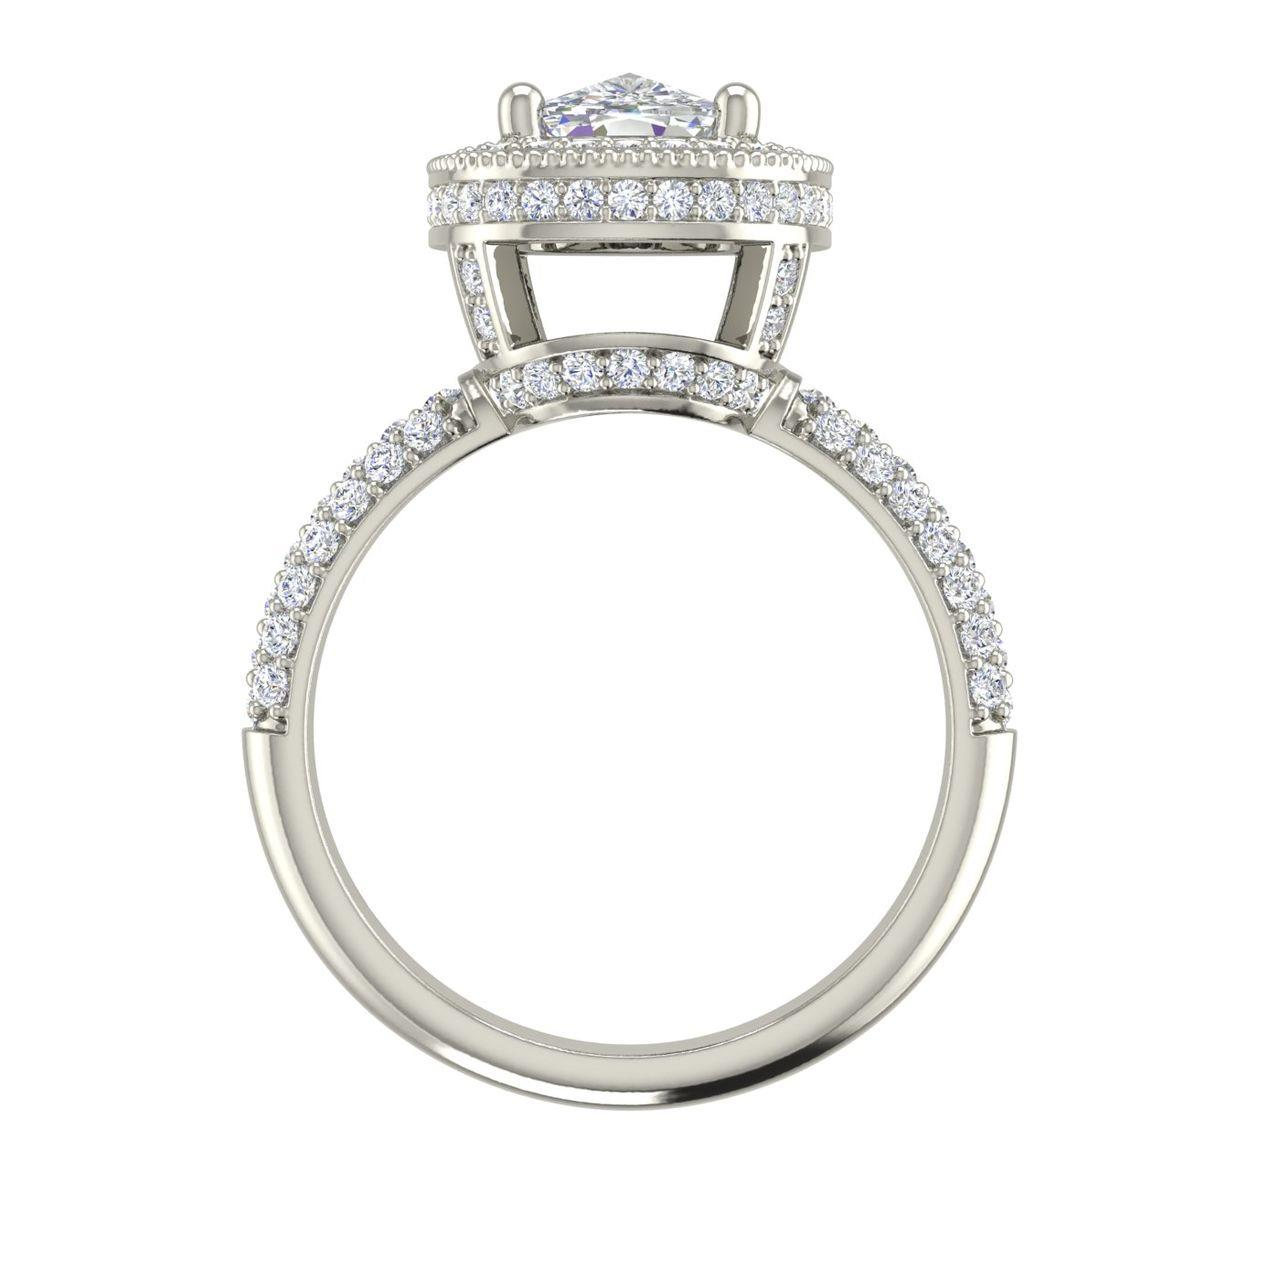 Halo 1.75 Carat Cushion Cut Diamond Engagement Ring